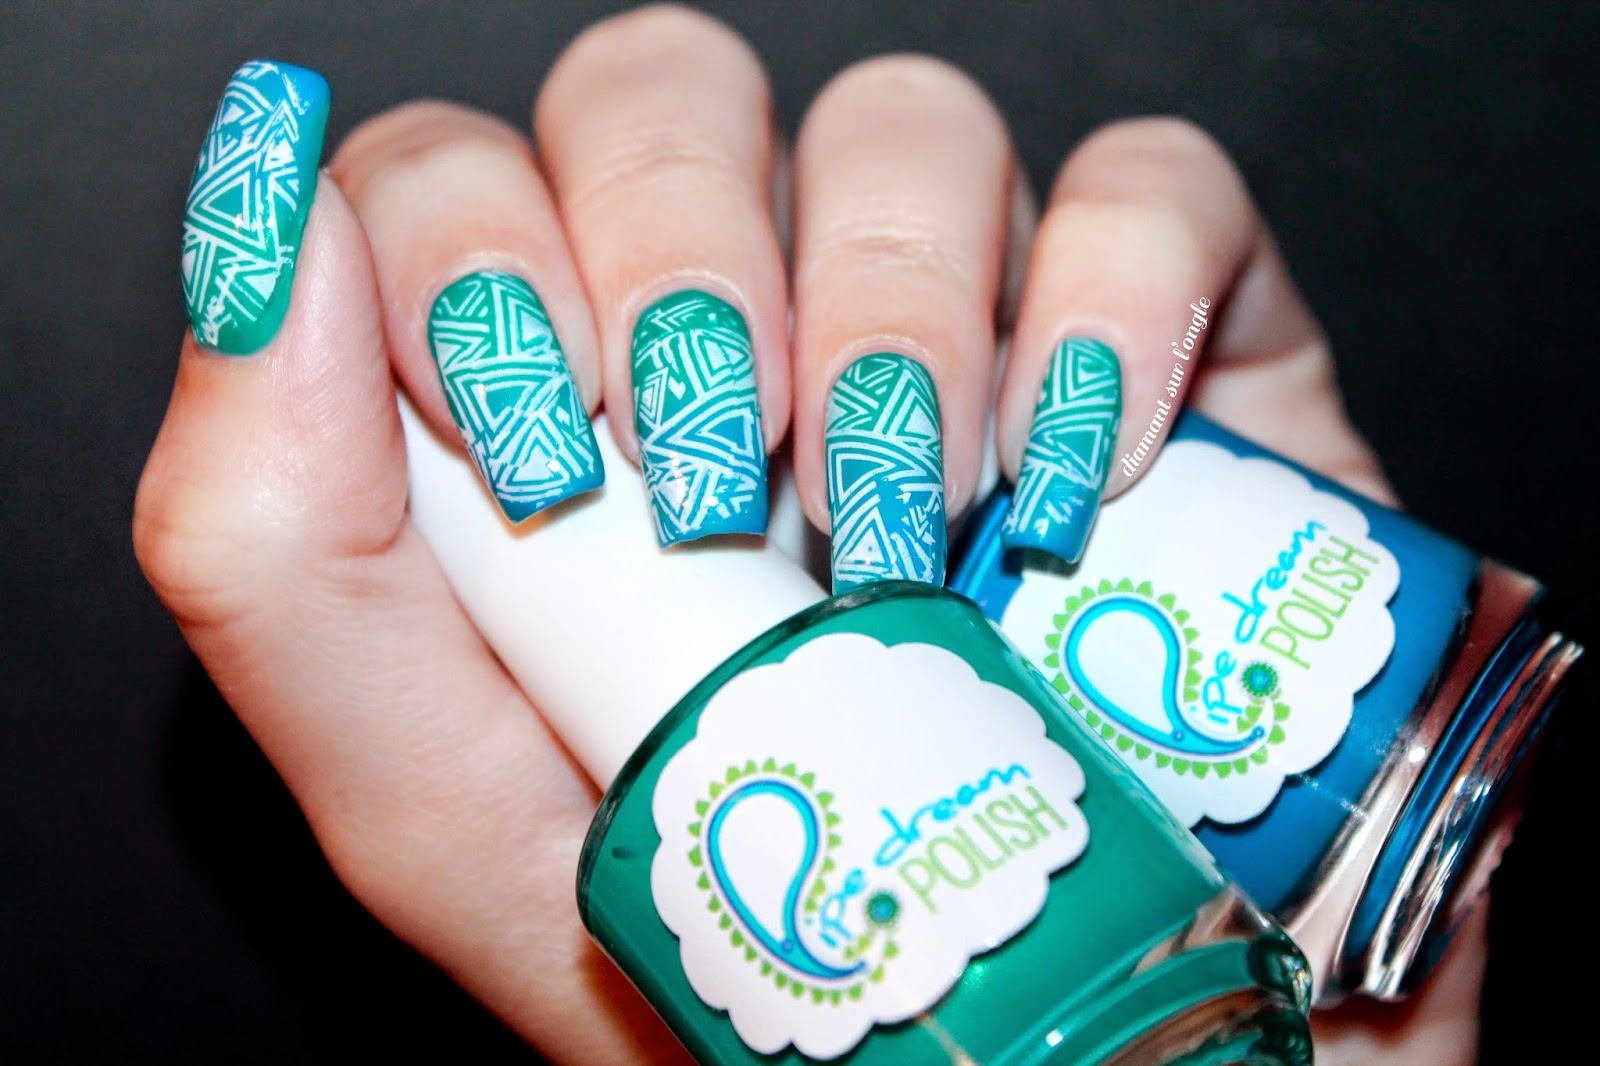 teal neon gradient nail art and white stamping